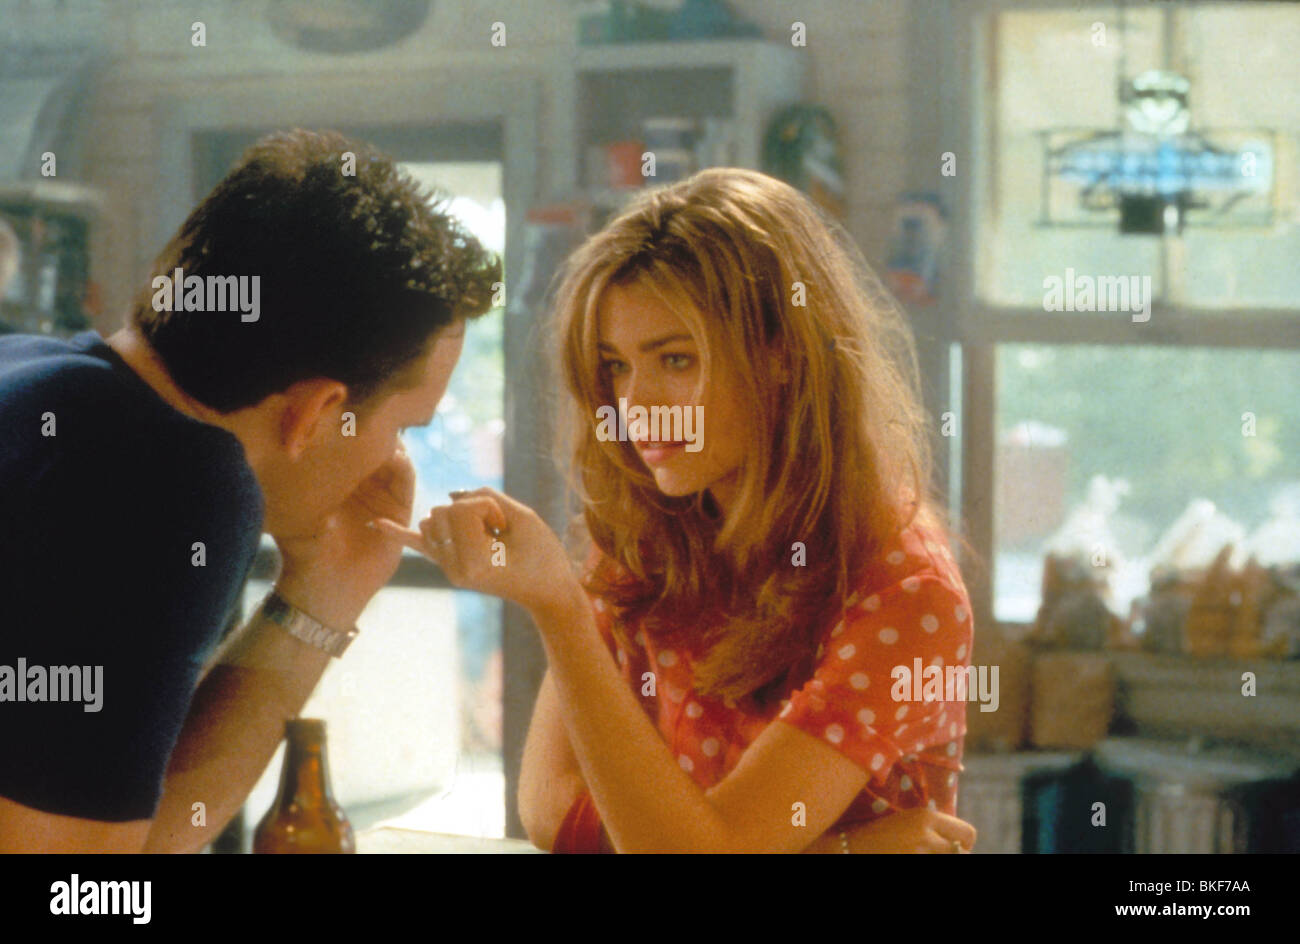 WILD THINGS (1998) MATT DILLON, DENISE RICHARDS WTGS 023 H - Stock Image